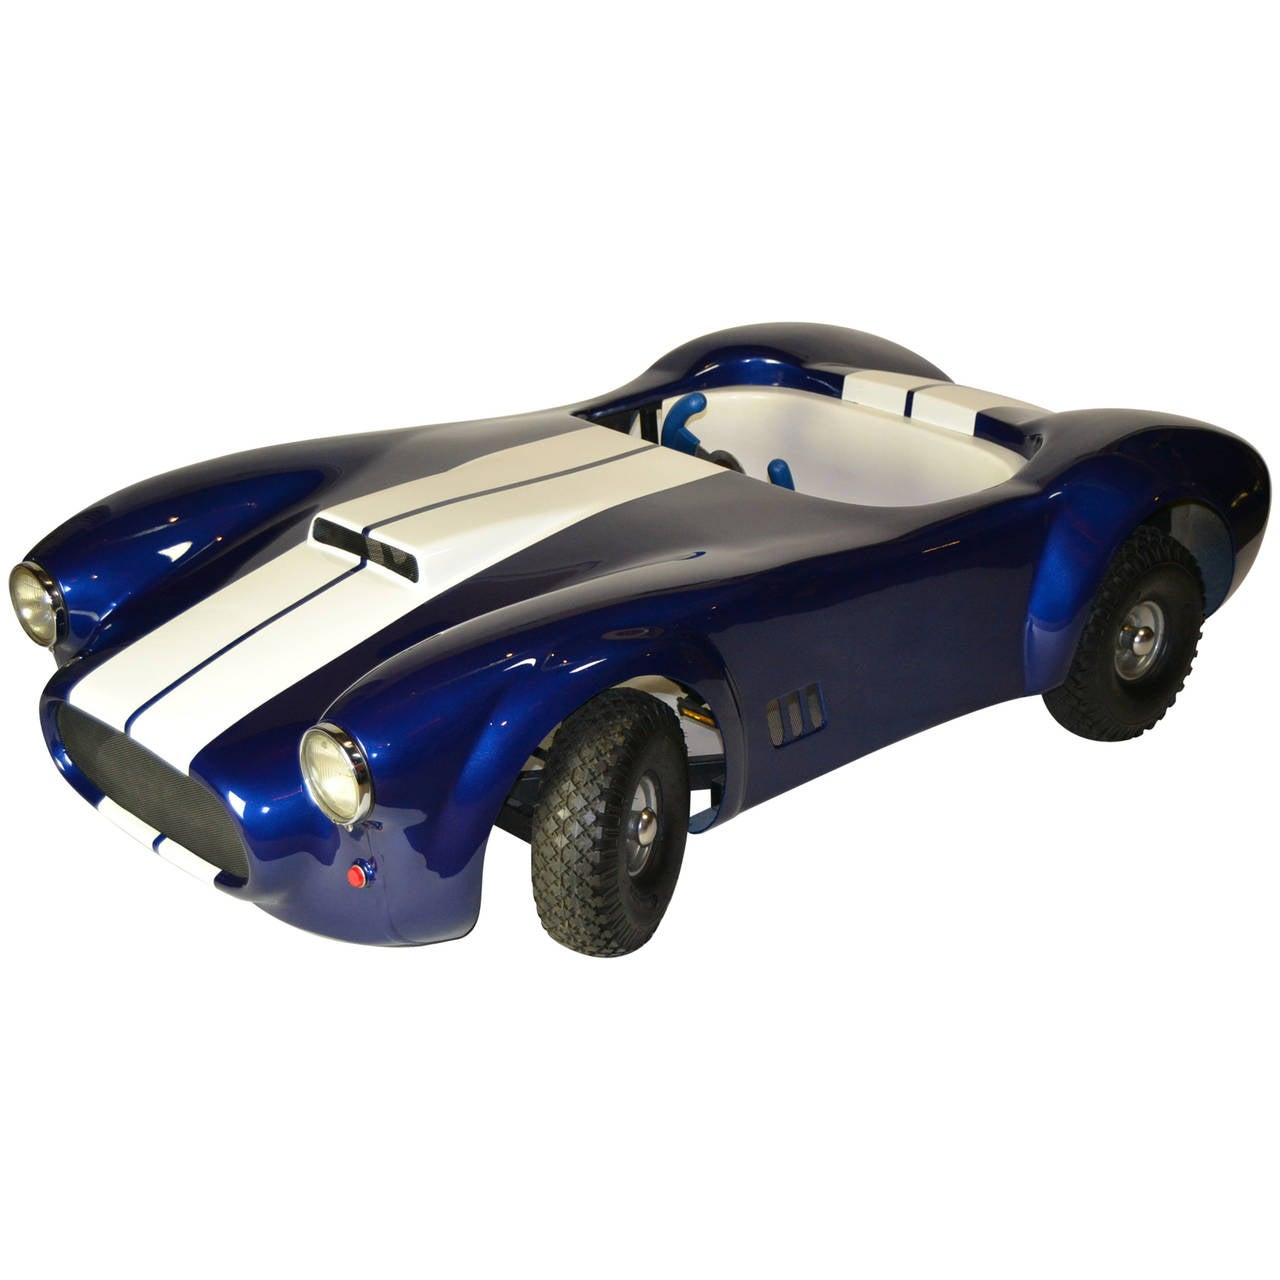 Big Vintage Ford Shelby Cobra Pedal Car At Stdibs - Big sports cars